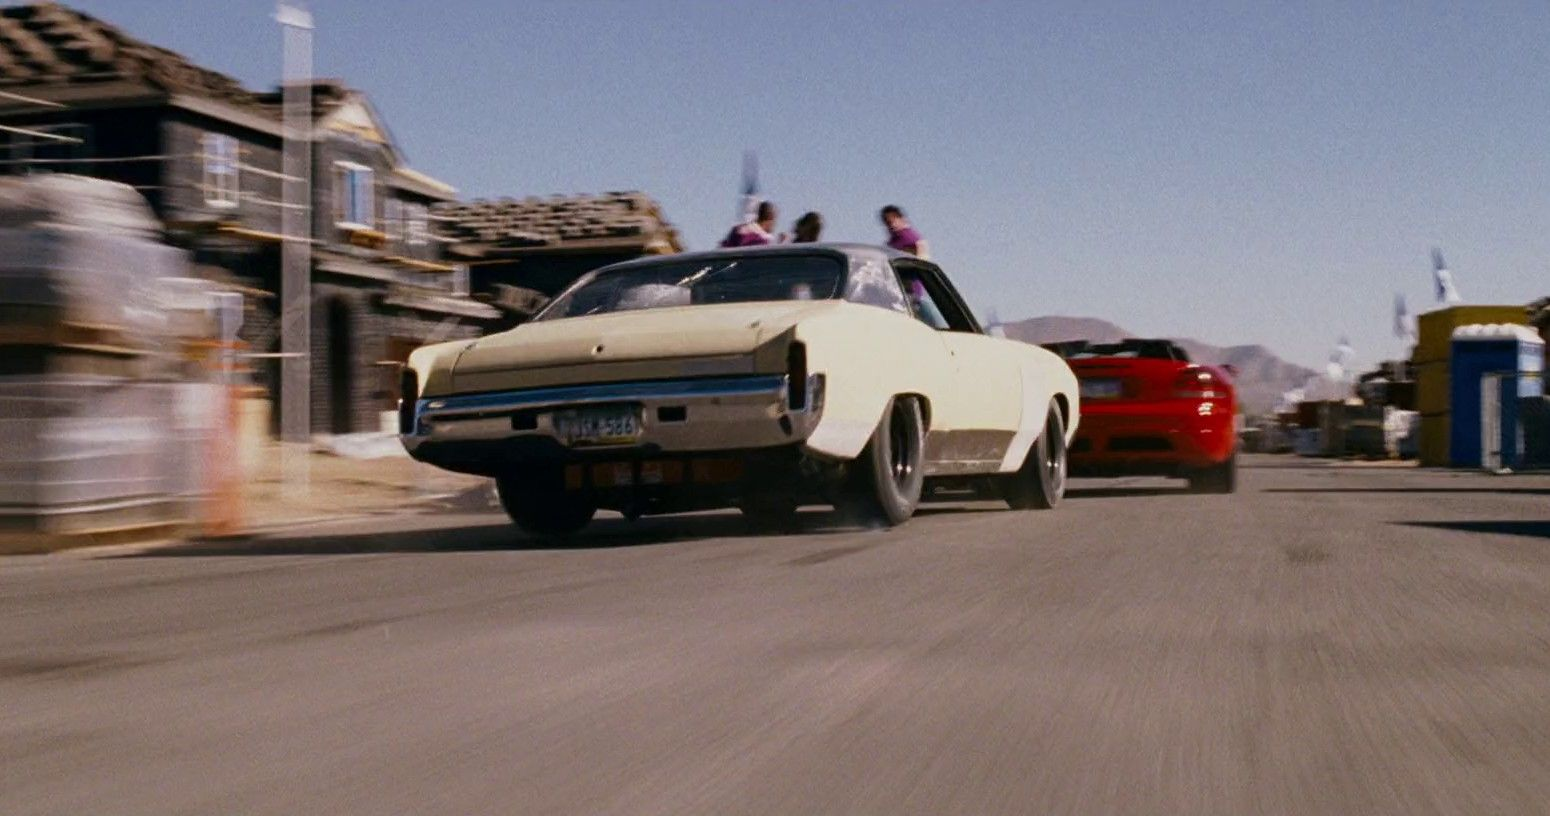 Here's What Happened To The 1971 Monte Carlo From The Fast And The Furious